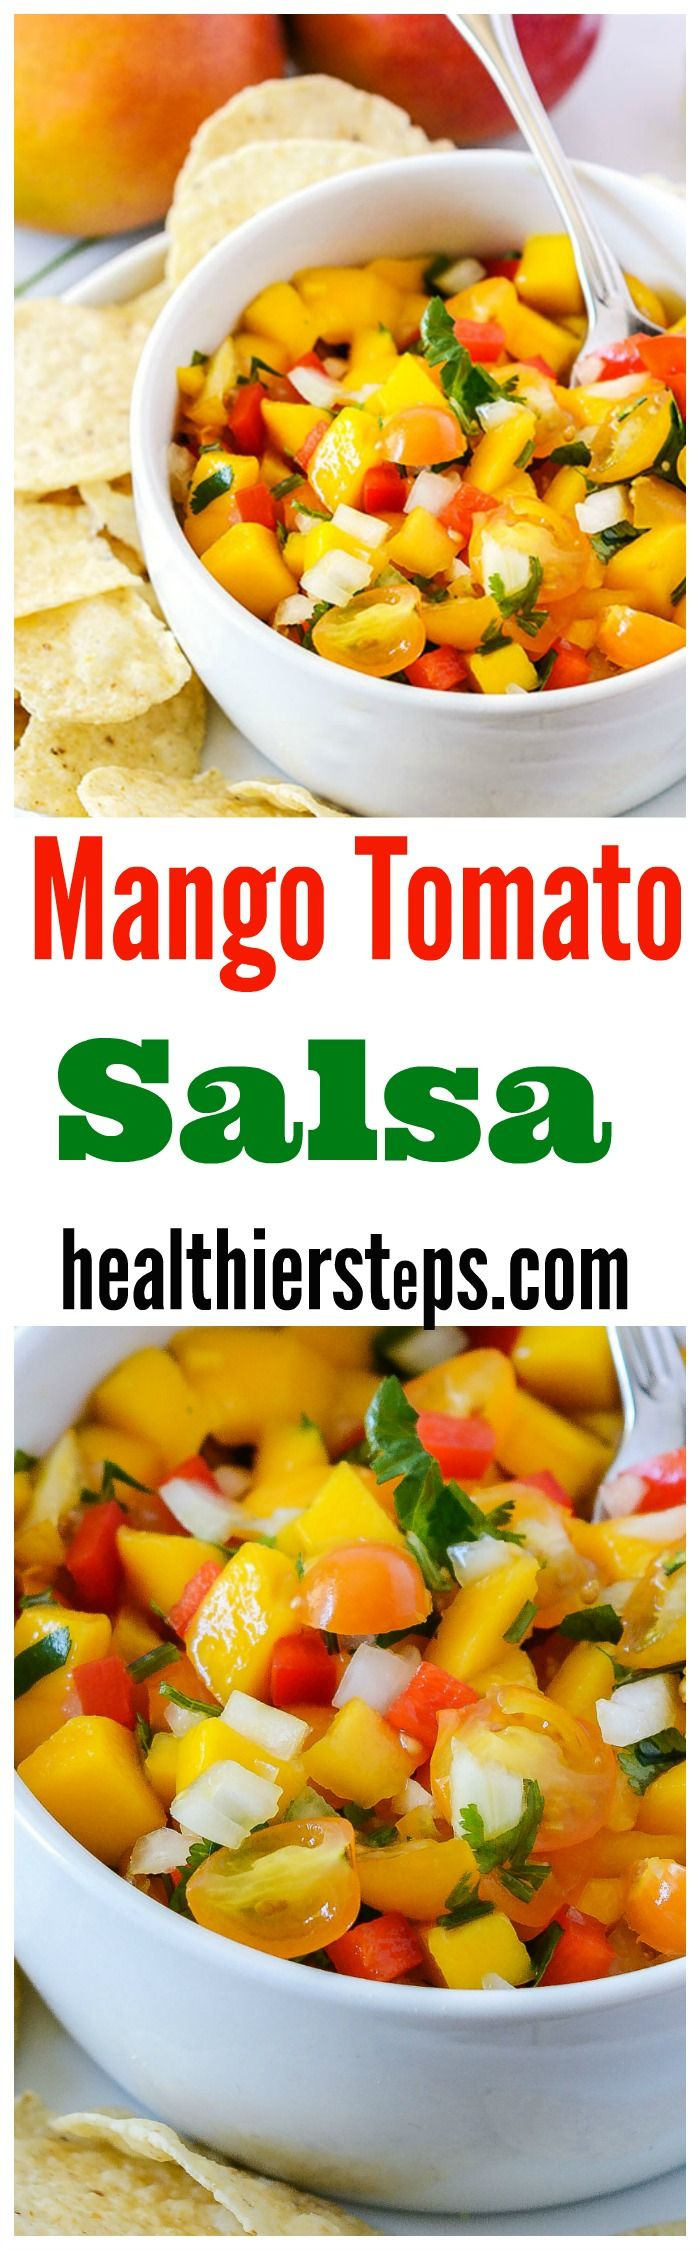 5.01 Mango Tomato Salsa recipe is so delicious, it is quick and easy to prepare. Juicy ripe mangoes with cherry tomatoes, red bell pepper…